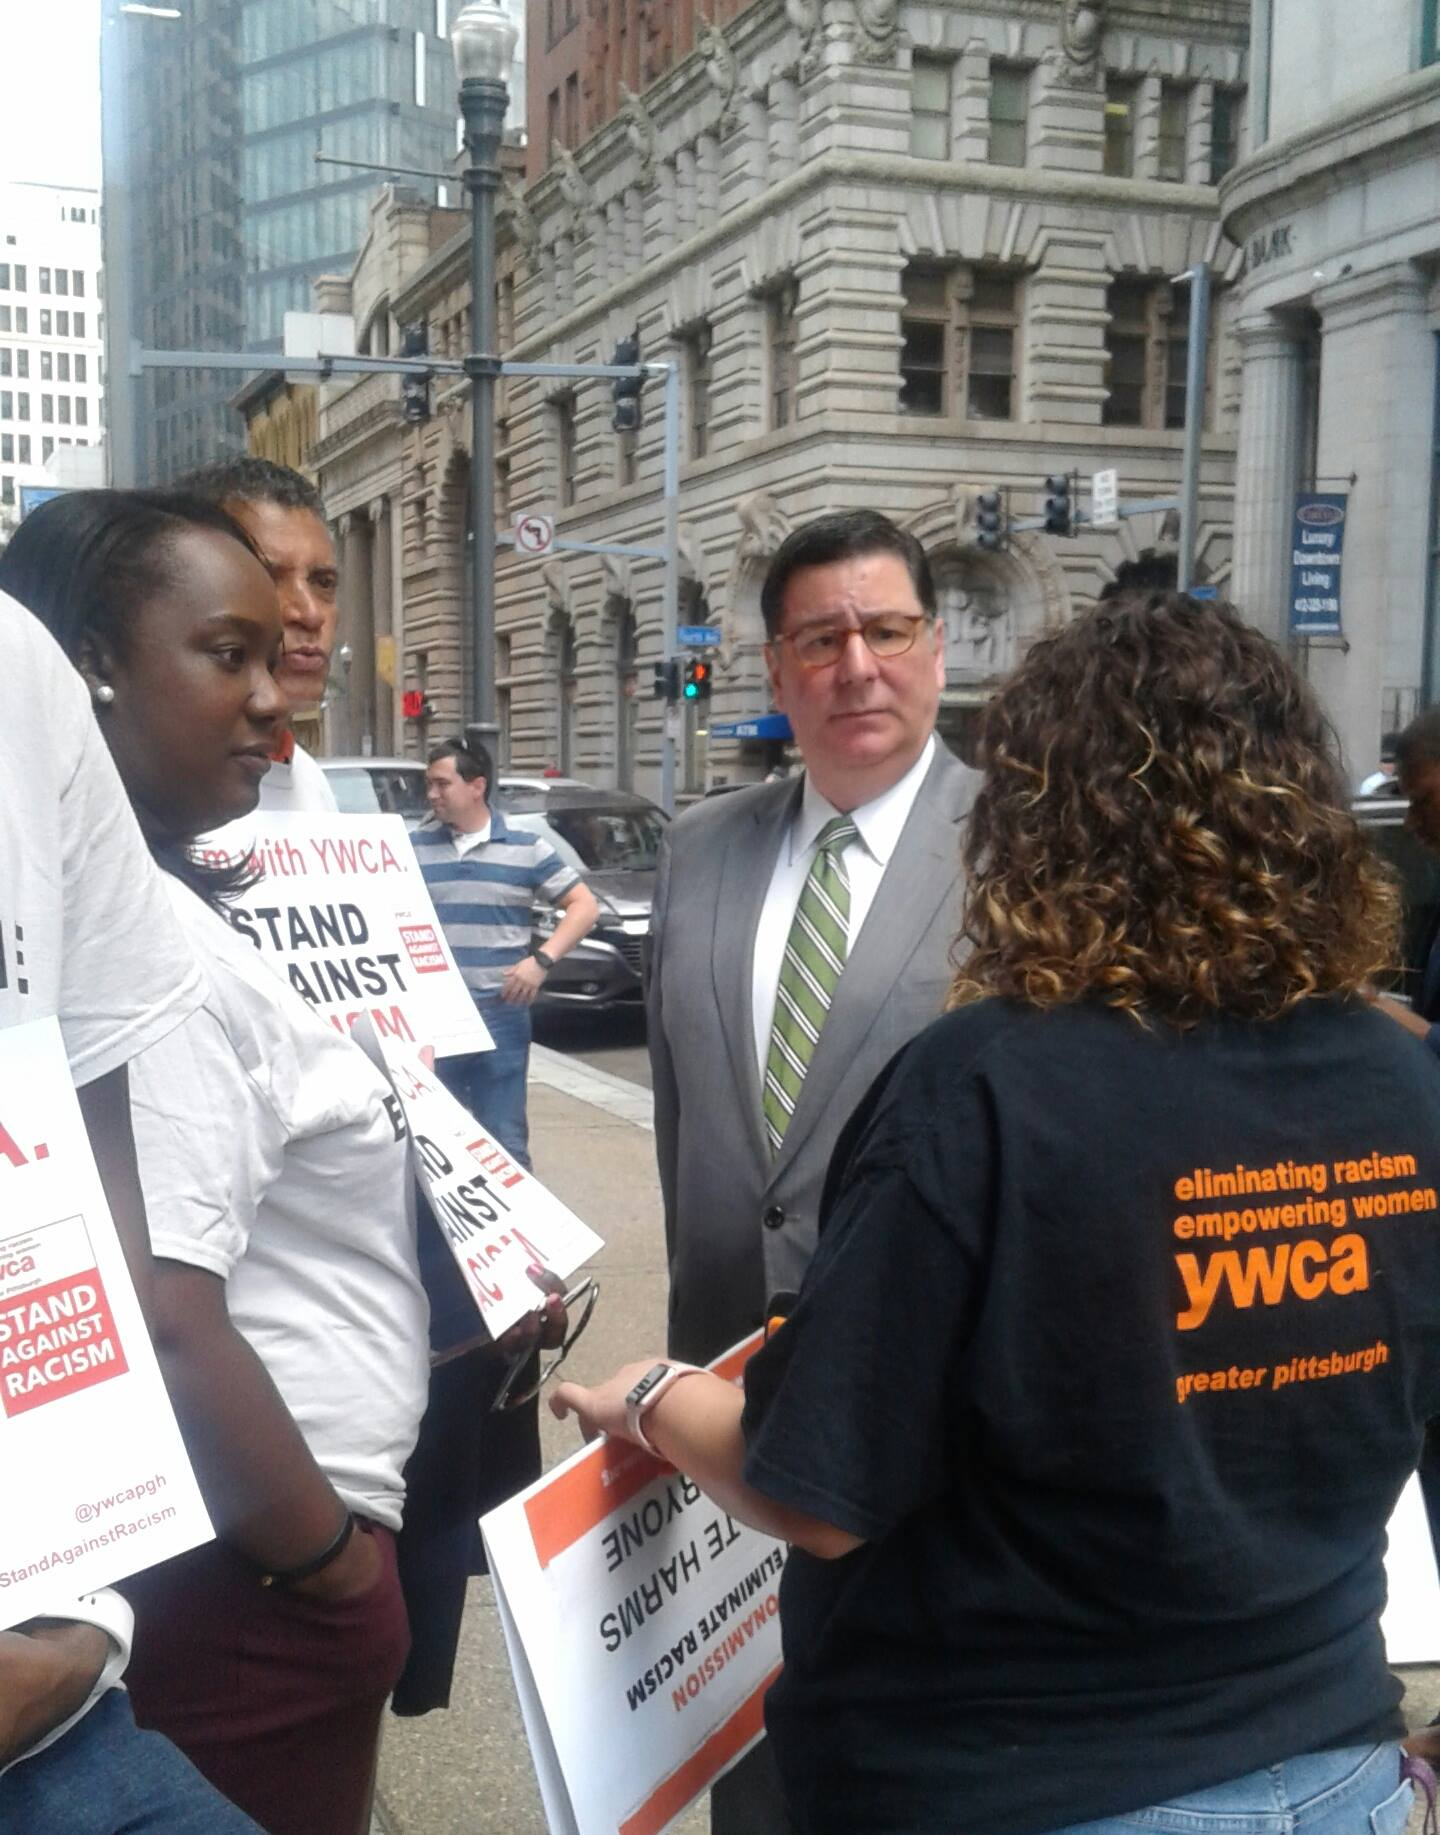 Wikimedia Commons,Mayor Bill Peduto at the Stand Against Racism Rally,https://commons.wikimedia.org/wiki/File:Mayor_Bill_Peduto_at_the_Stand_Against_Racism_Rally.jpg